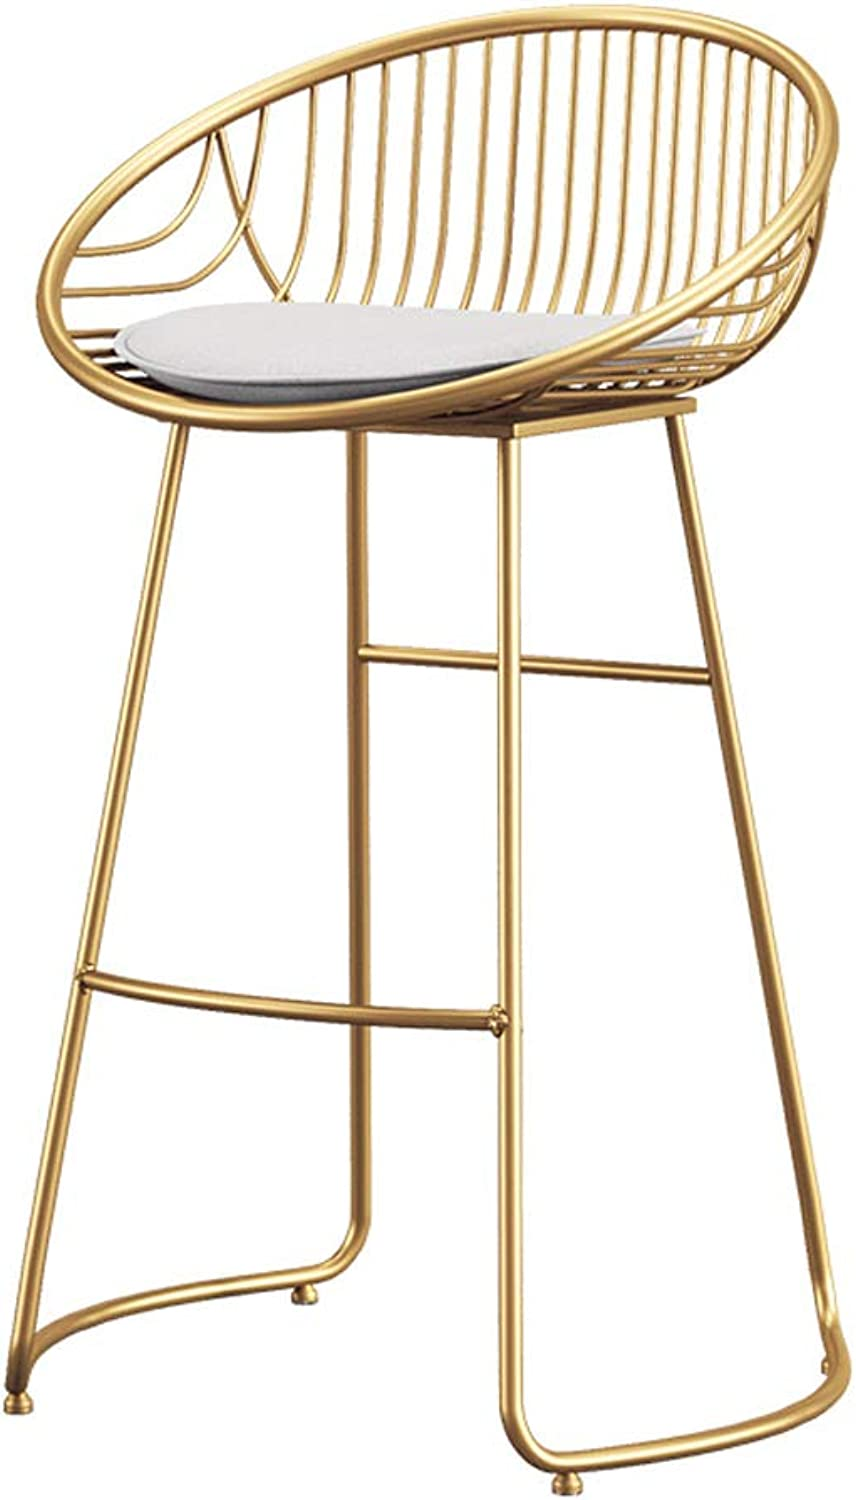 DQMS Nordic Bar Stools golden Modern Minimalist Wrought Iron High Stools Bar Dining Table Chairs Home Backrests One Pair, 4 (color   gold1, Size   60CM)